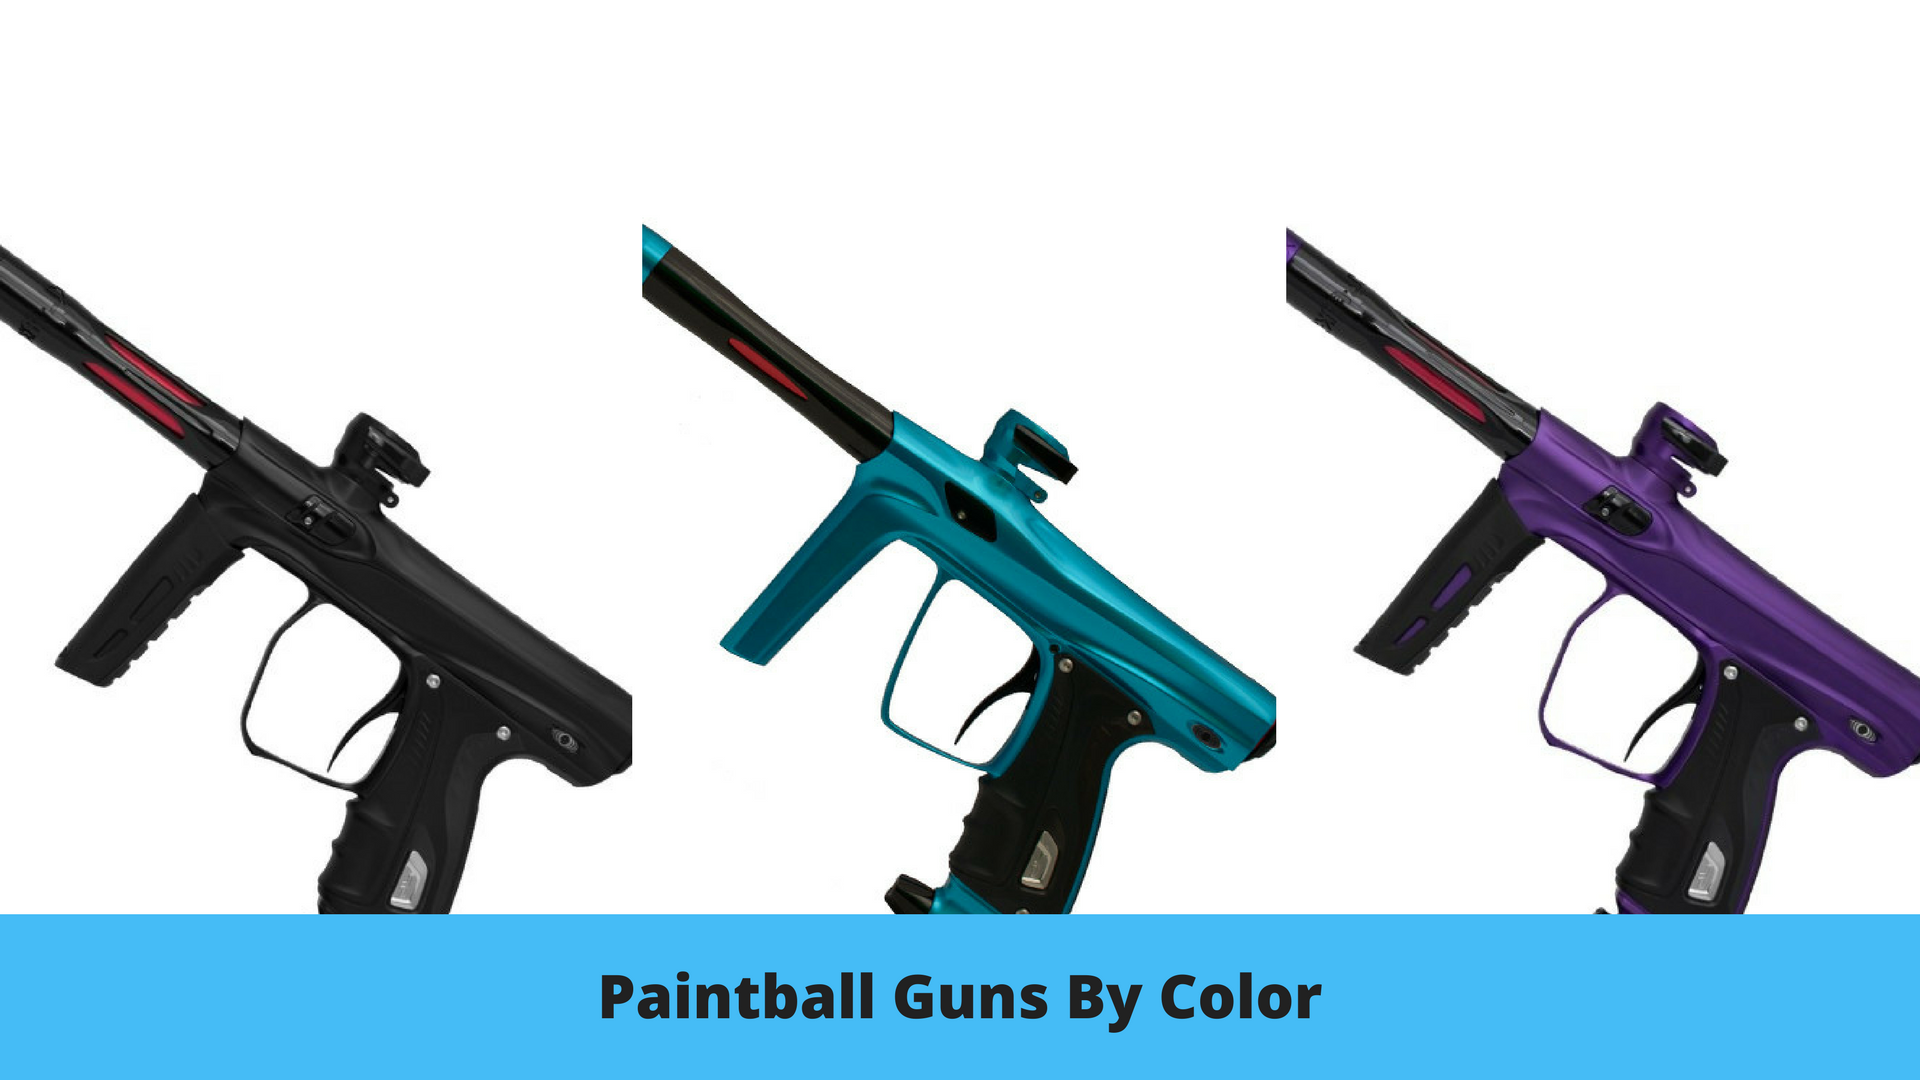 Paintball Guns by Color